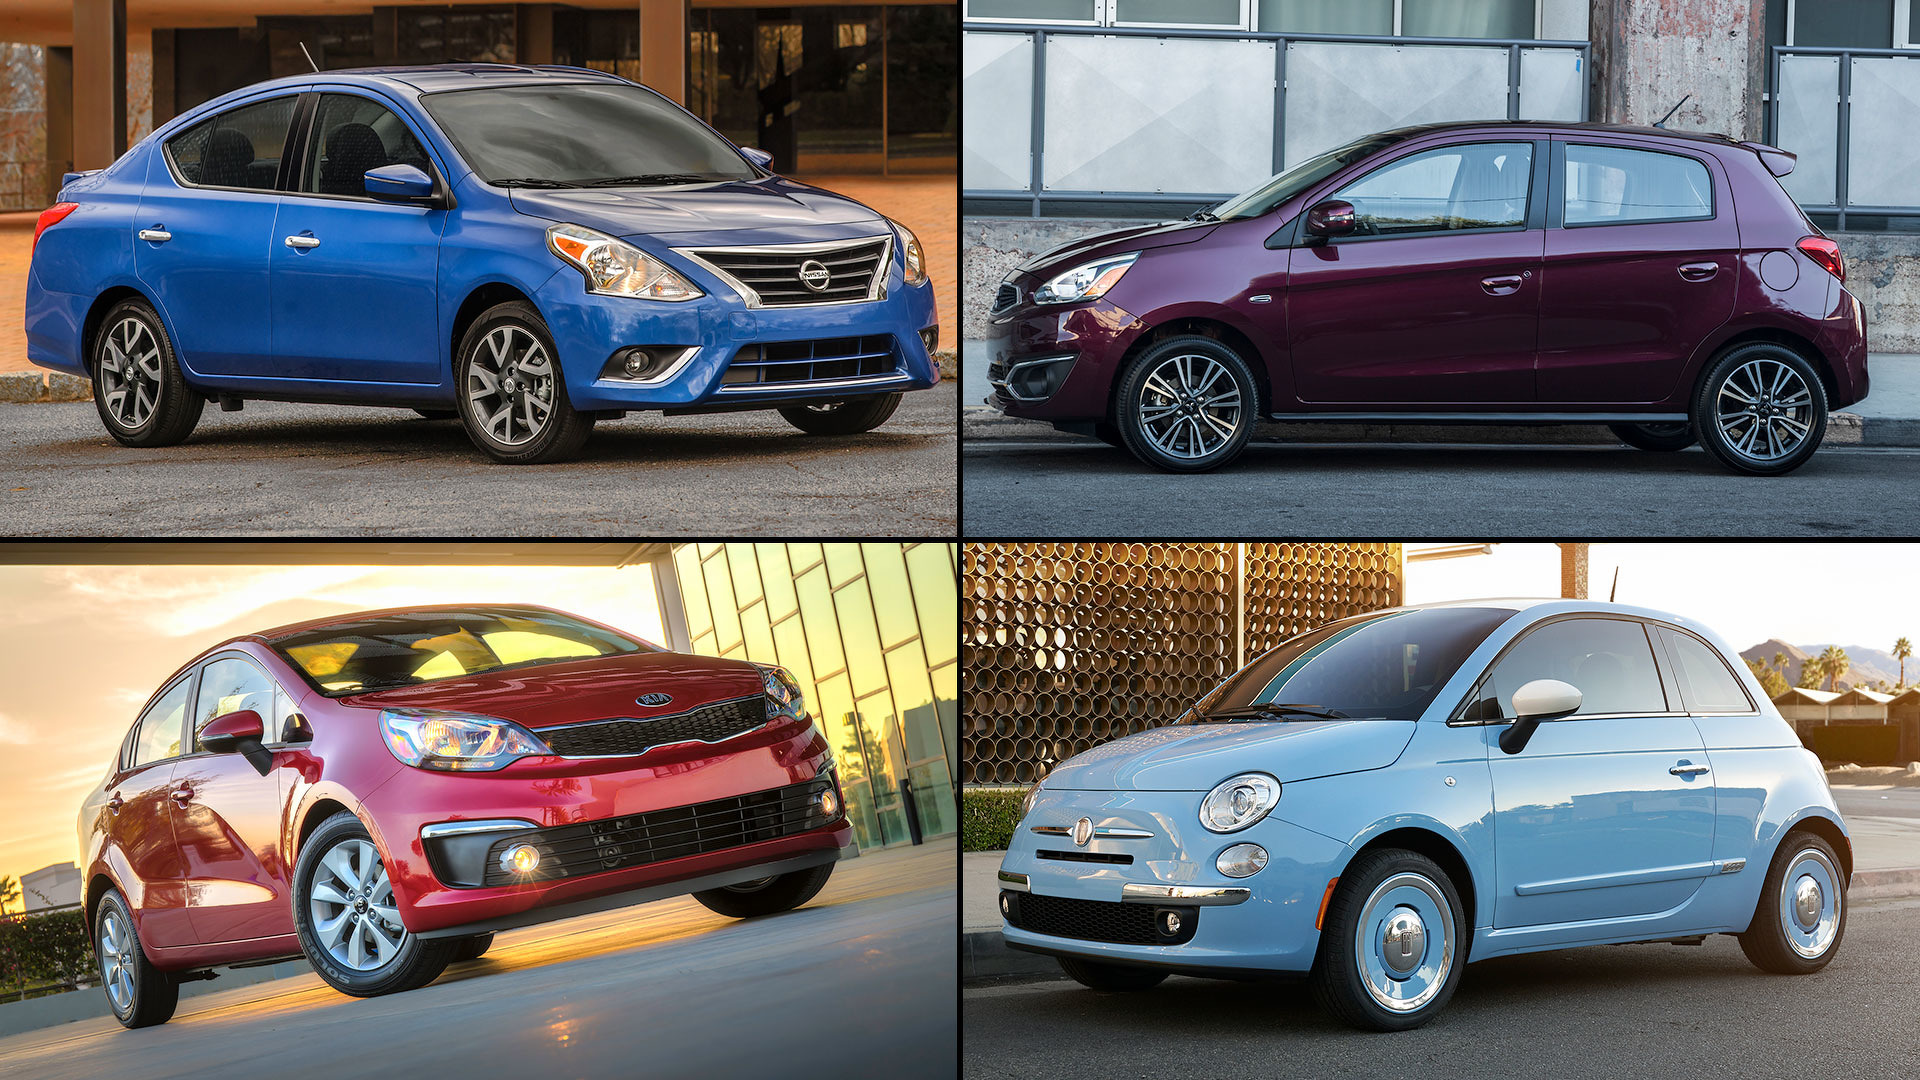 New Cheap Good Working Cars For Sale: 20 Cheapest Cars For Sale In The U.S